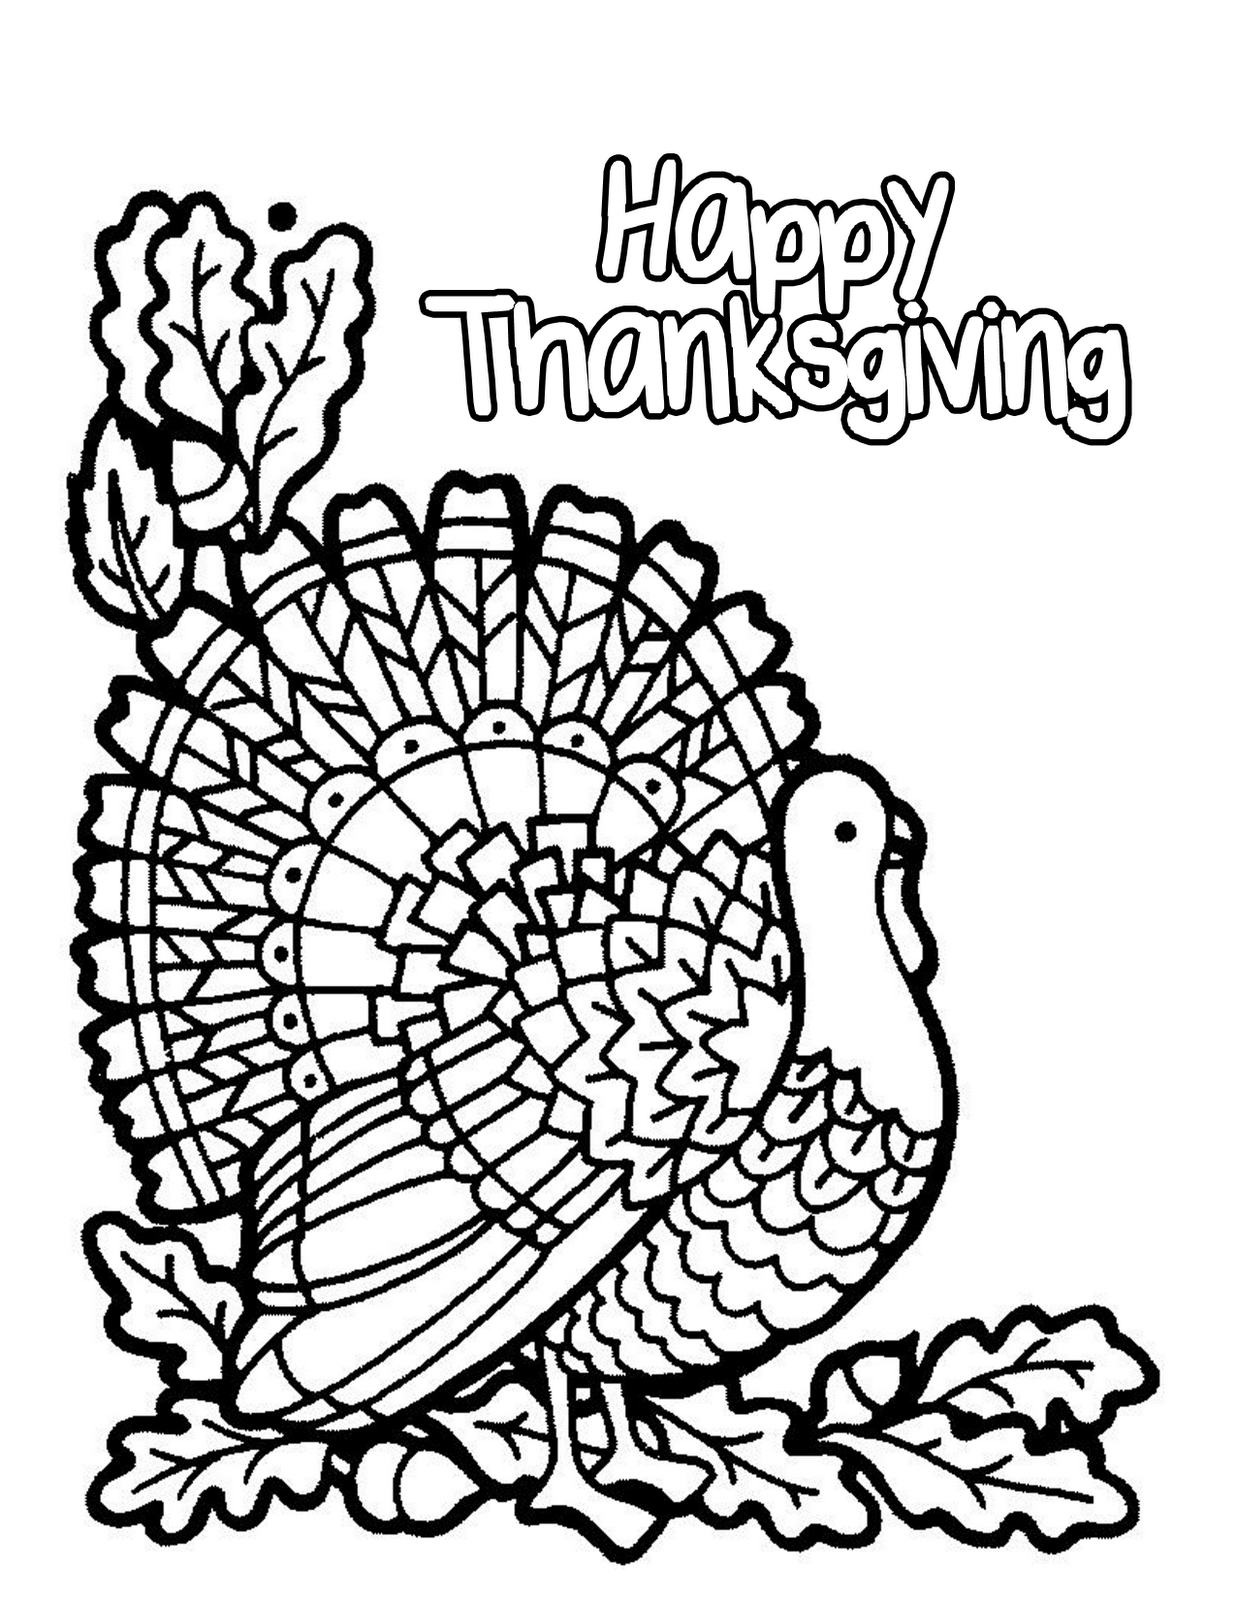 free coloring pages for thanksgiving - thanksgiving coloring pages for adults coloring home